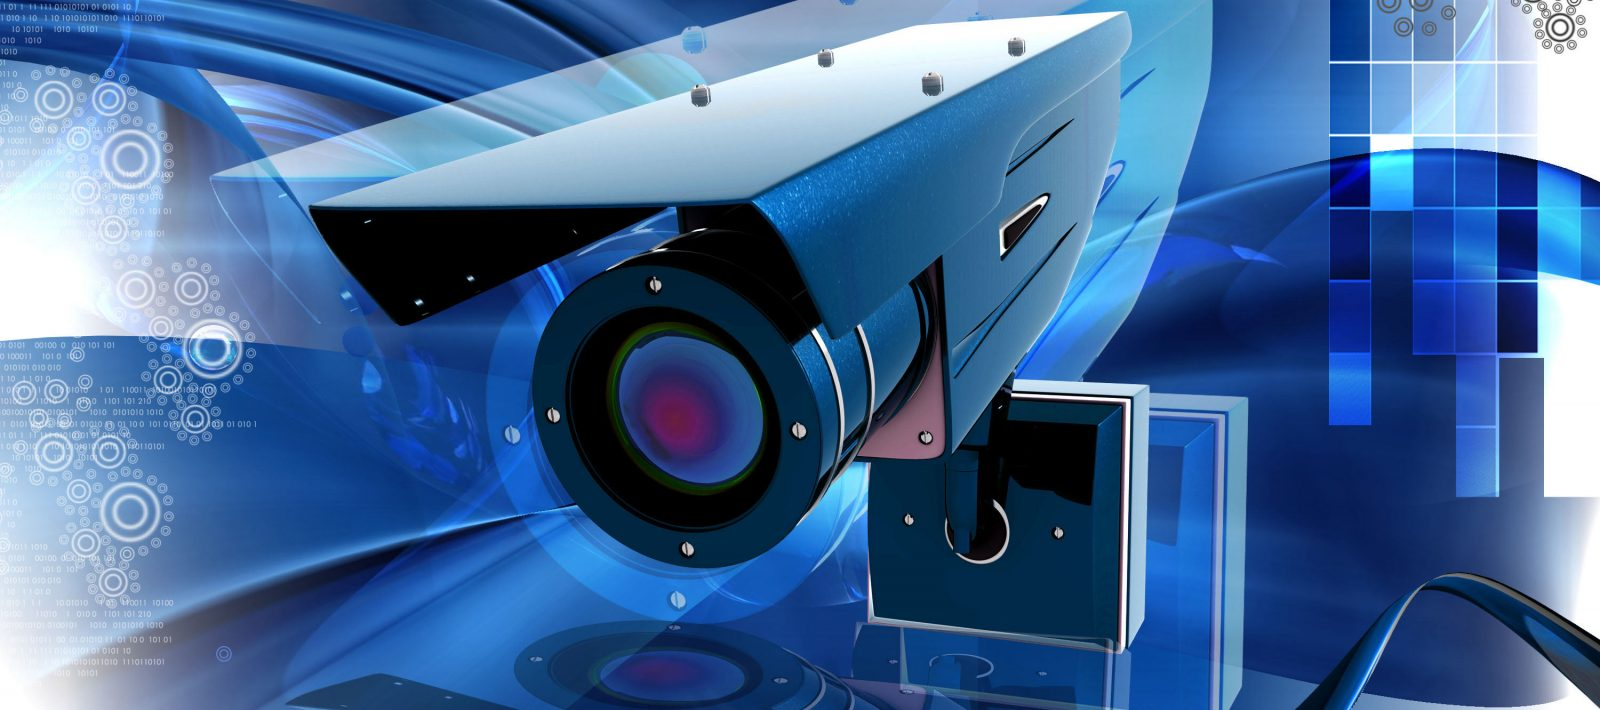 high definition security system essay